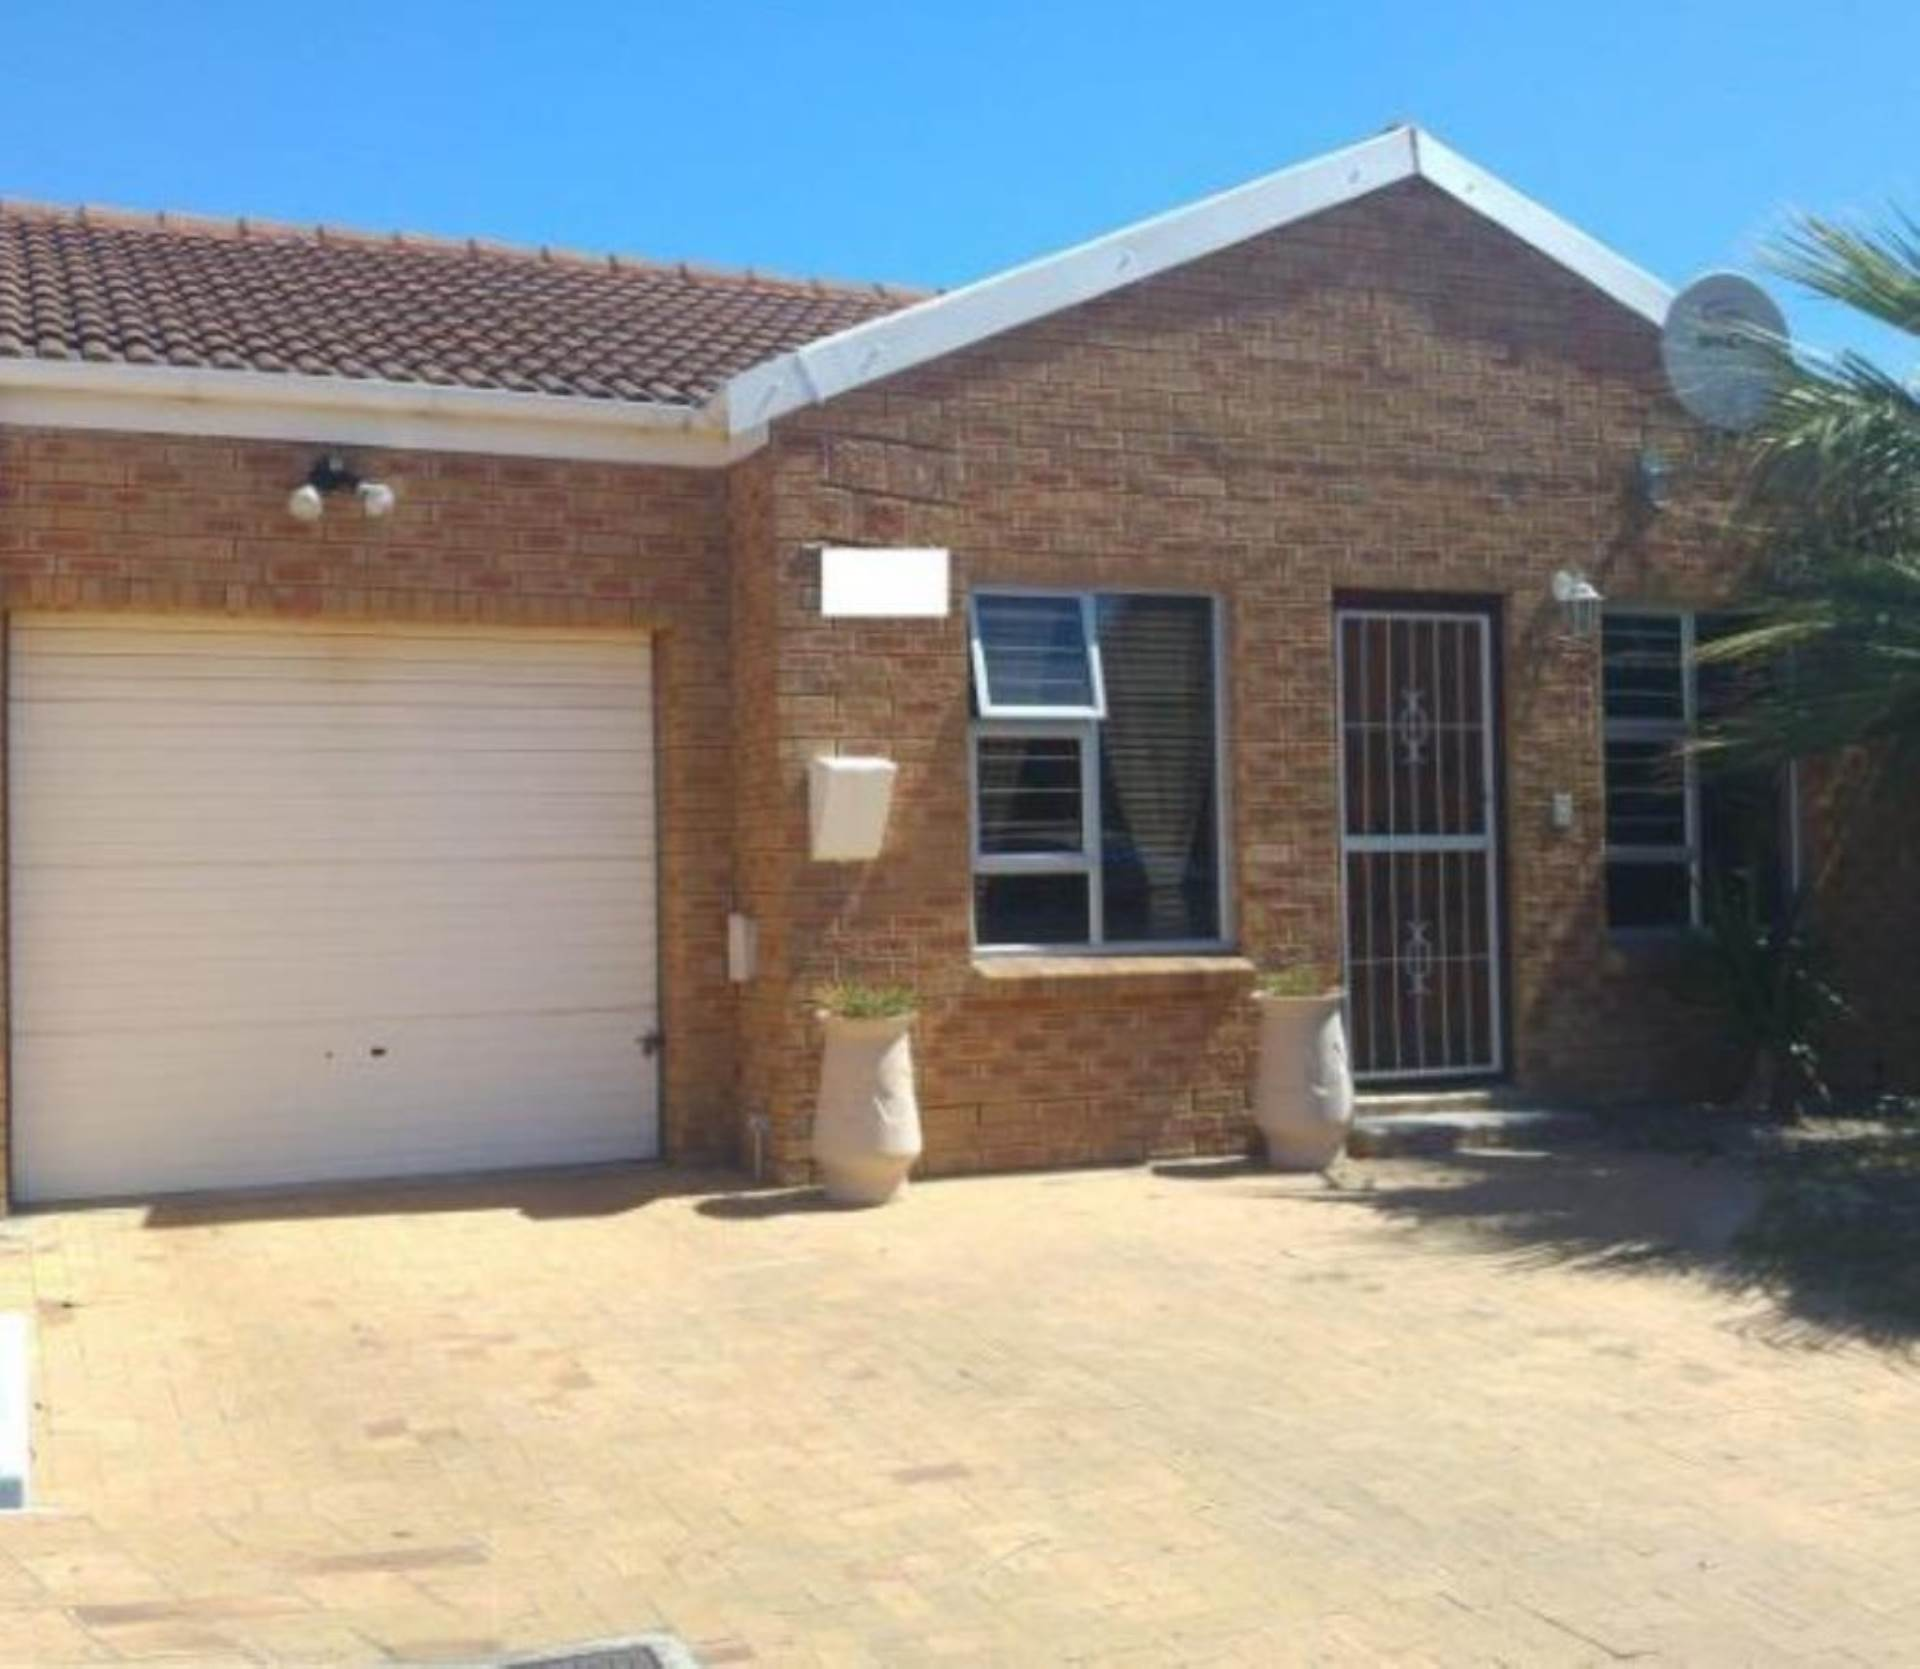 2 BedroomHouse For Sale In De Oude Spruit